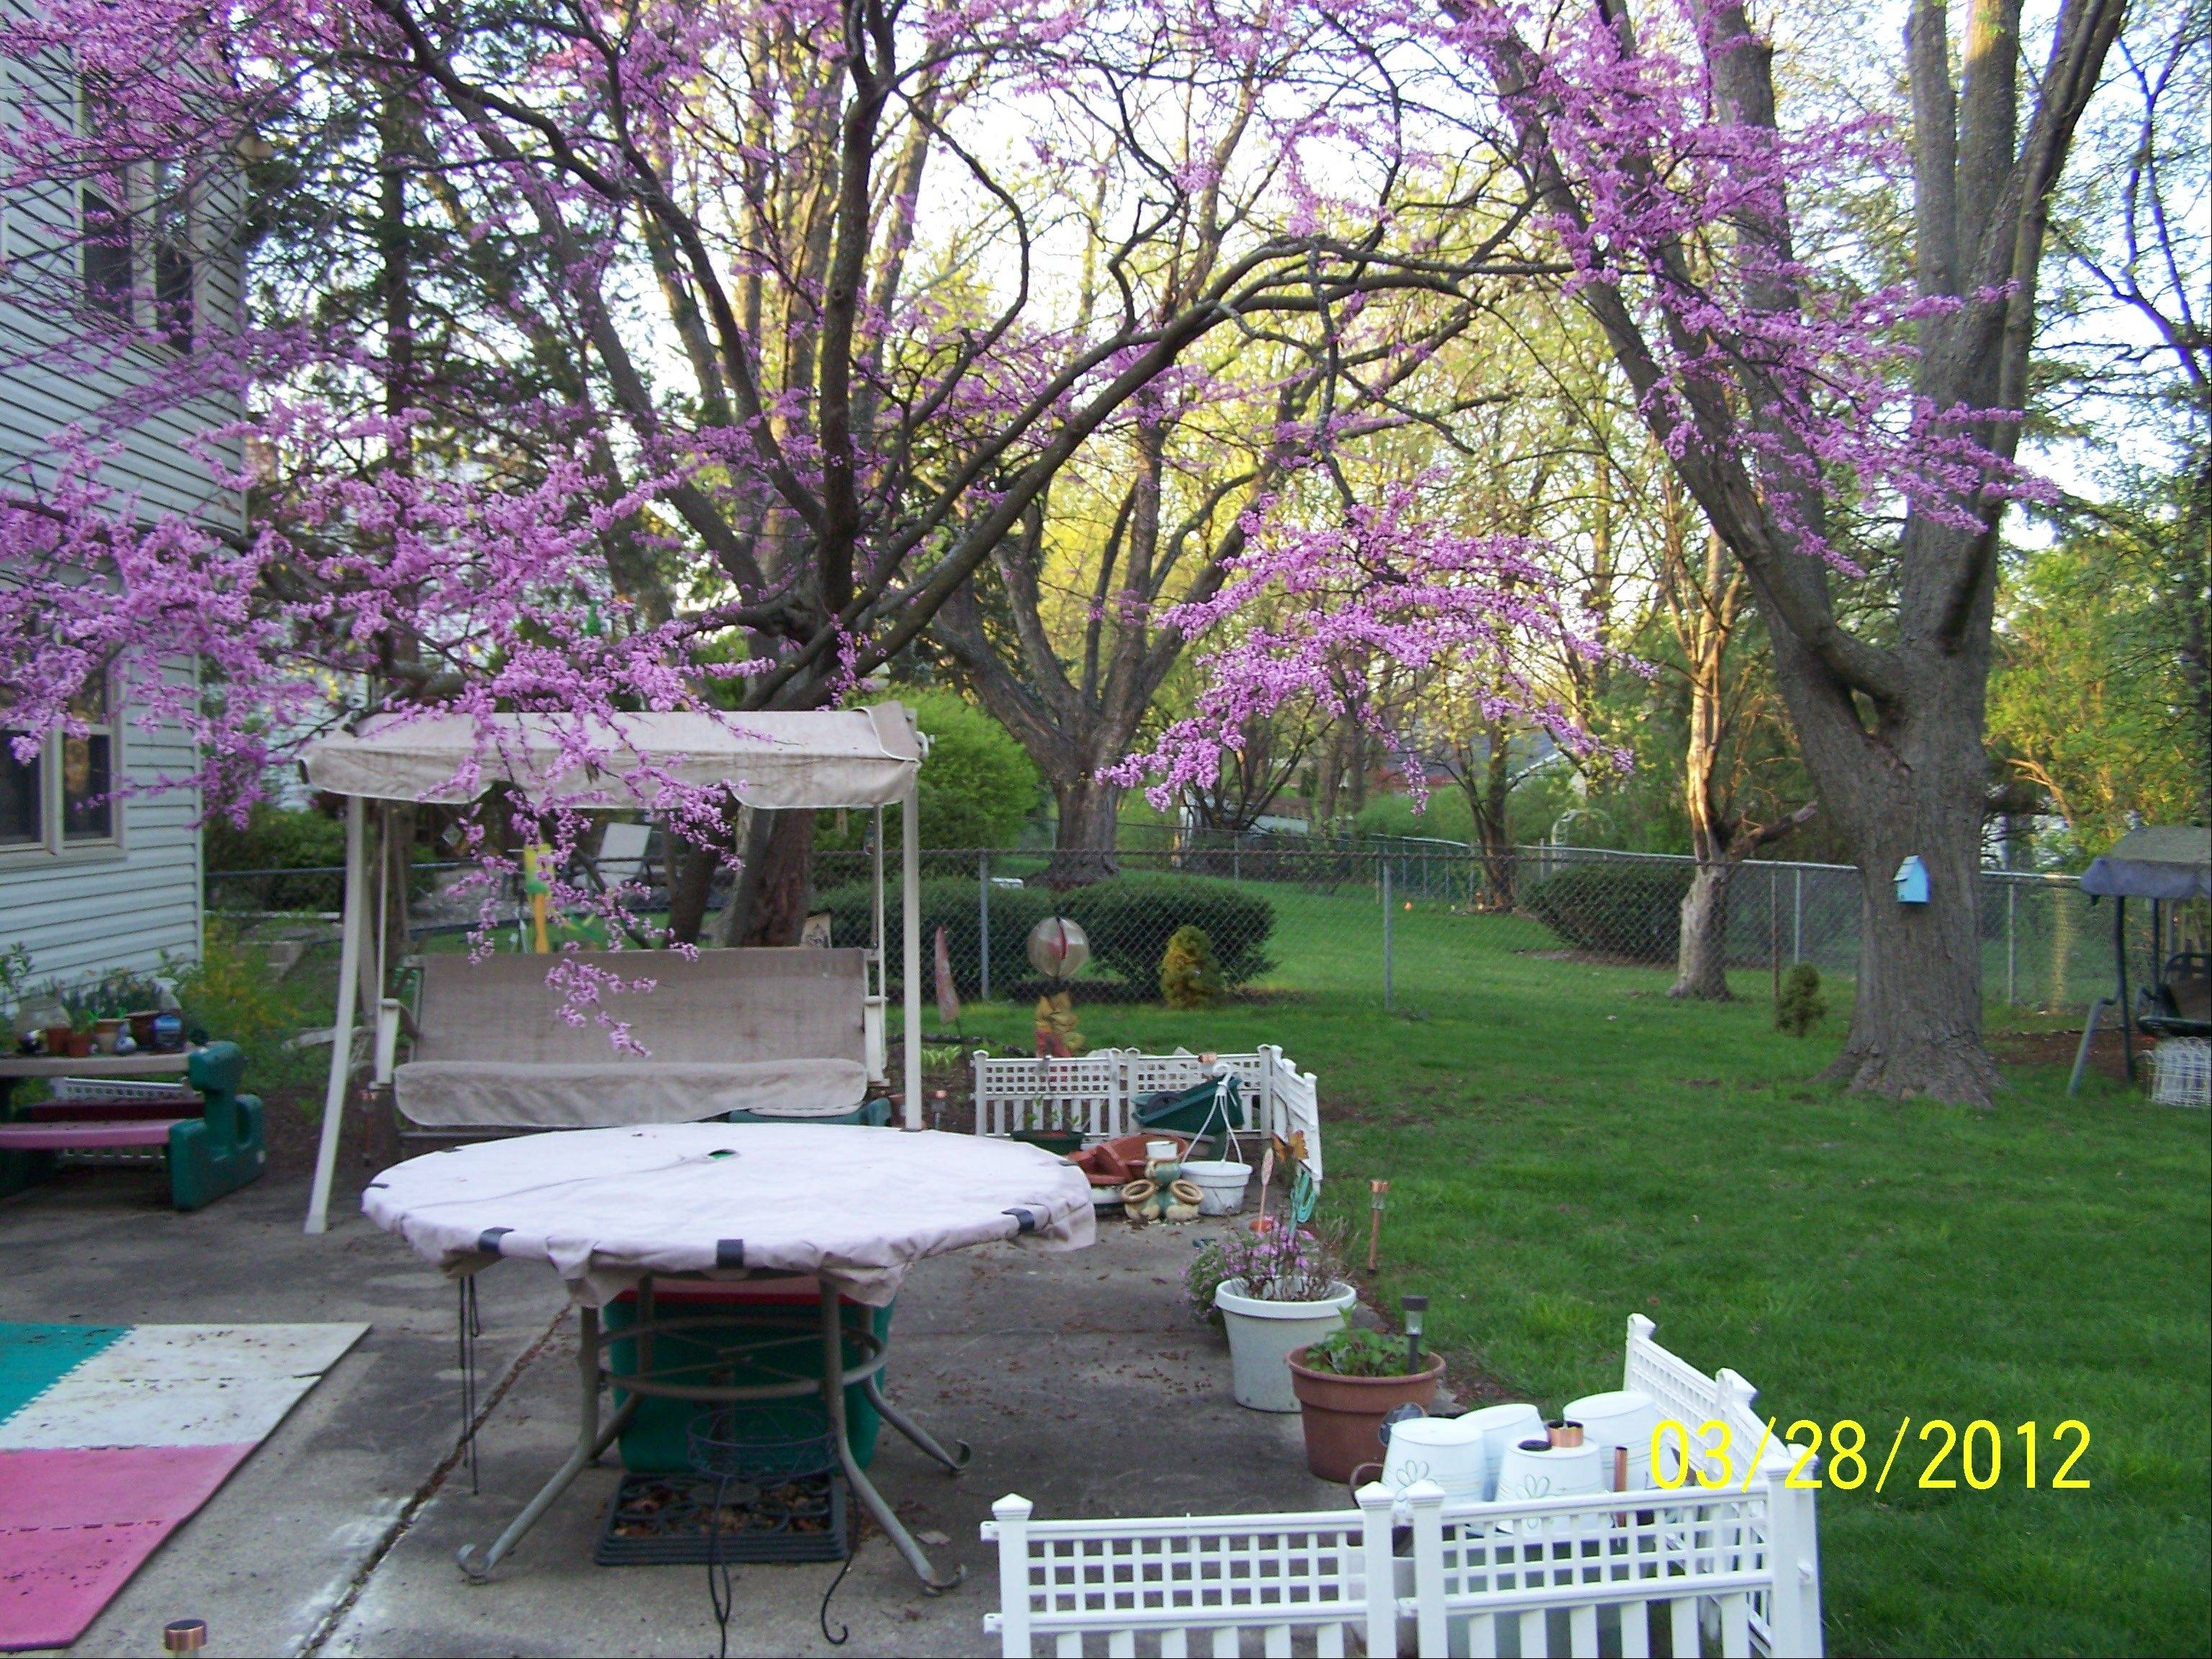 Backyard makeover Week 5: AARP couple and disabled daughter need a backyard